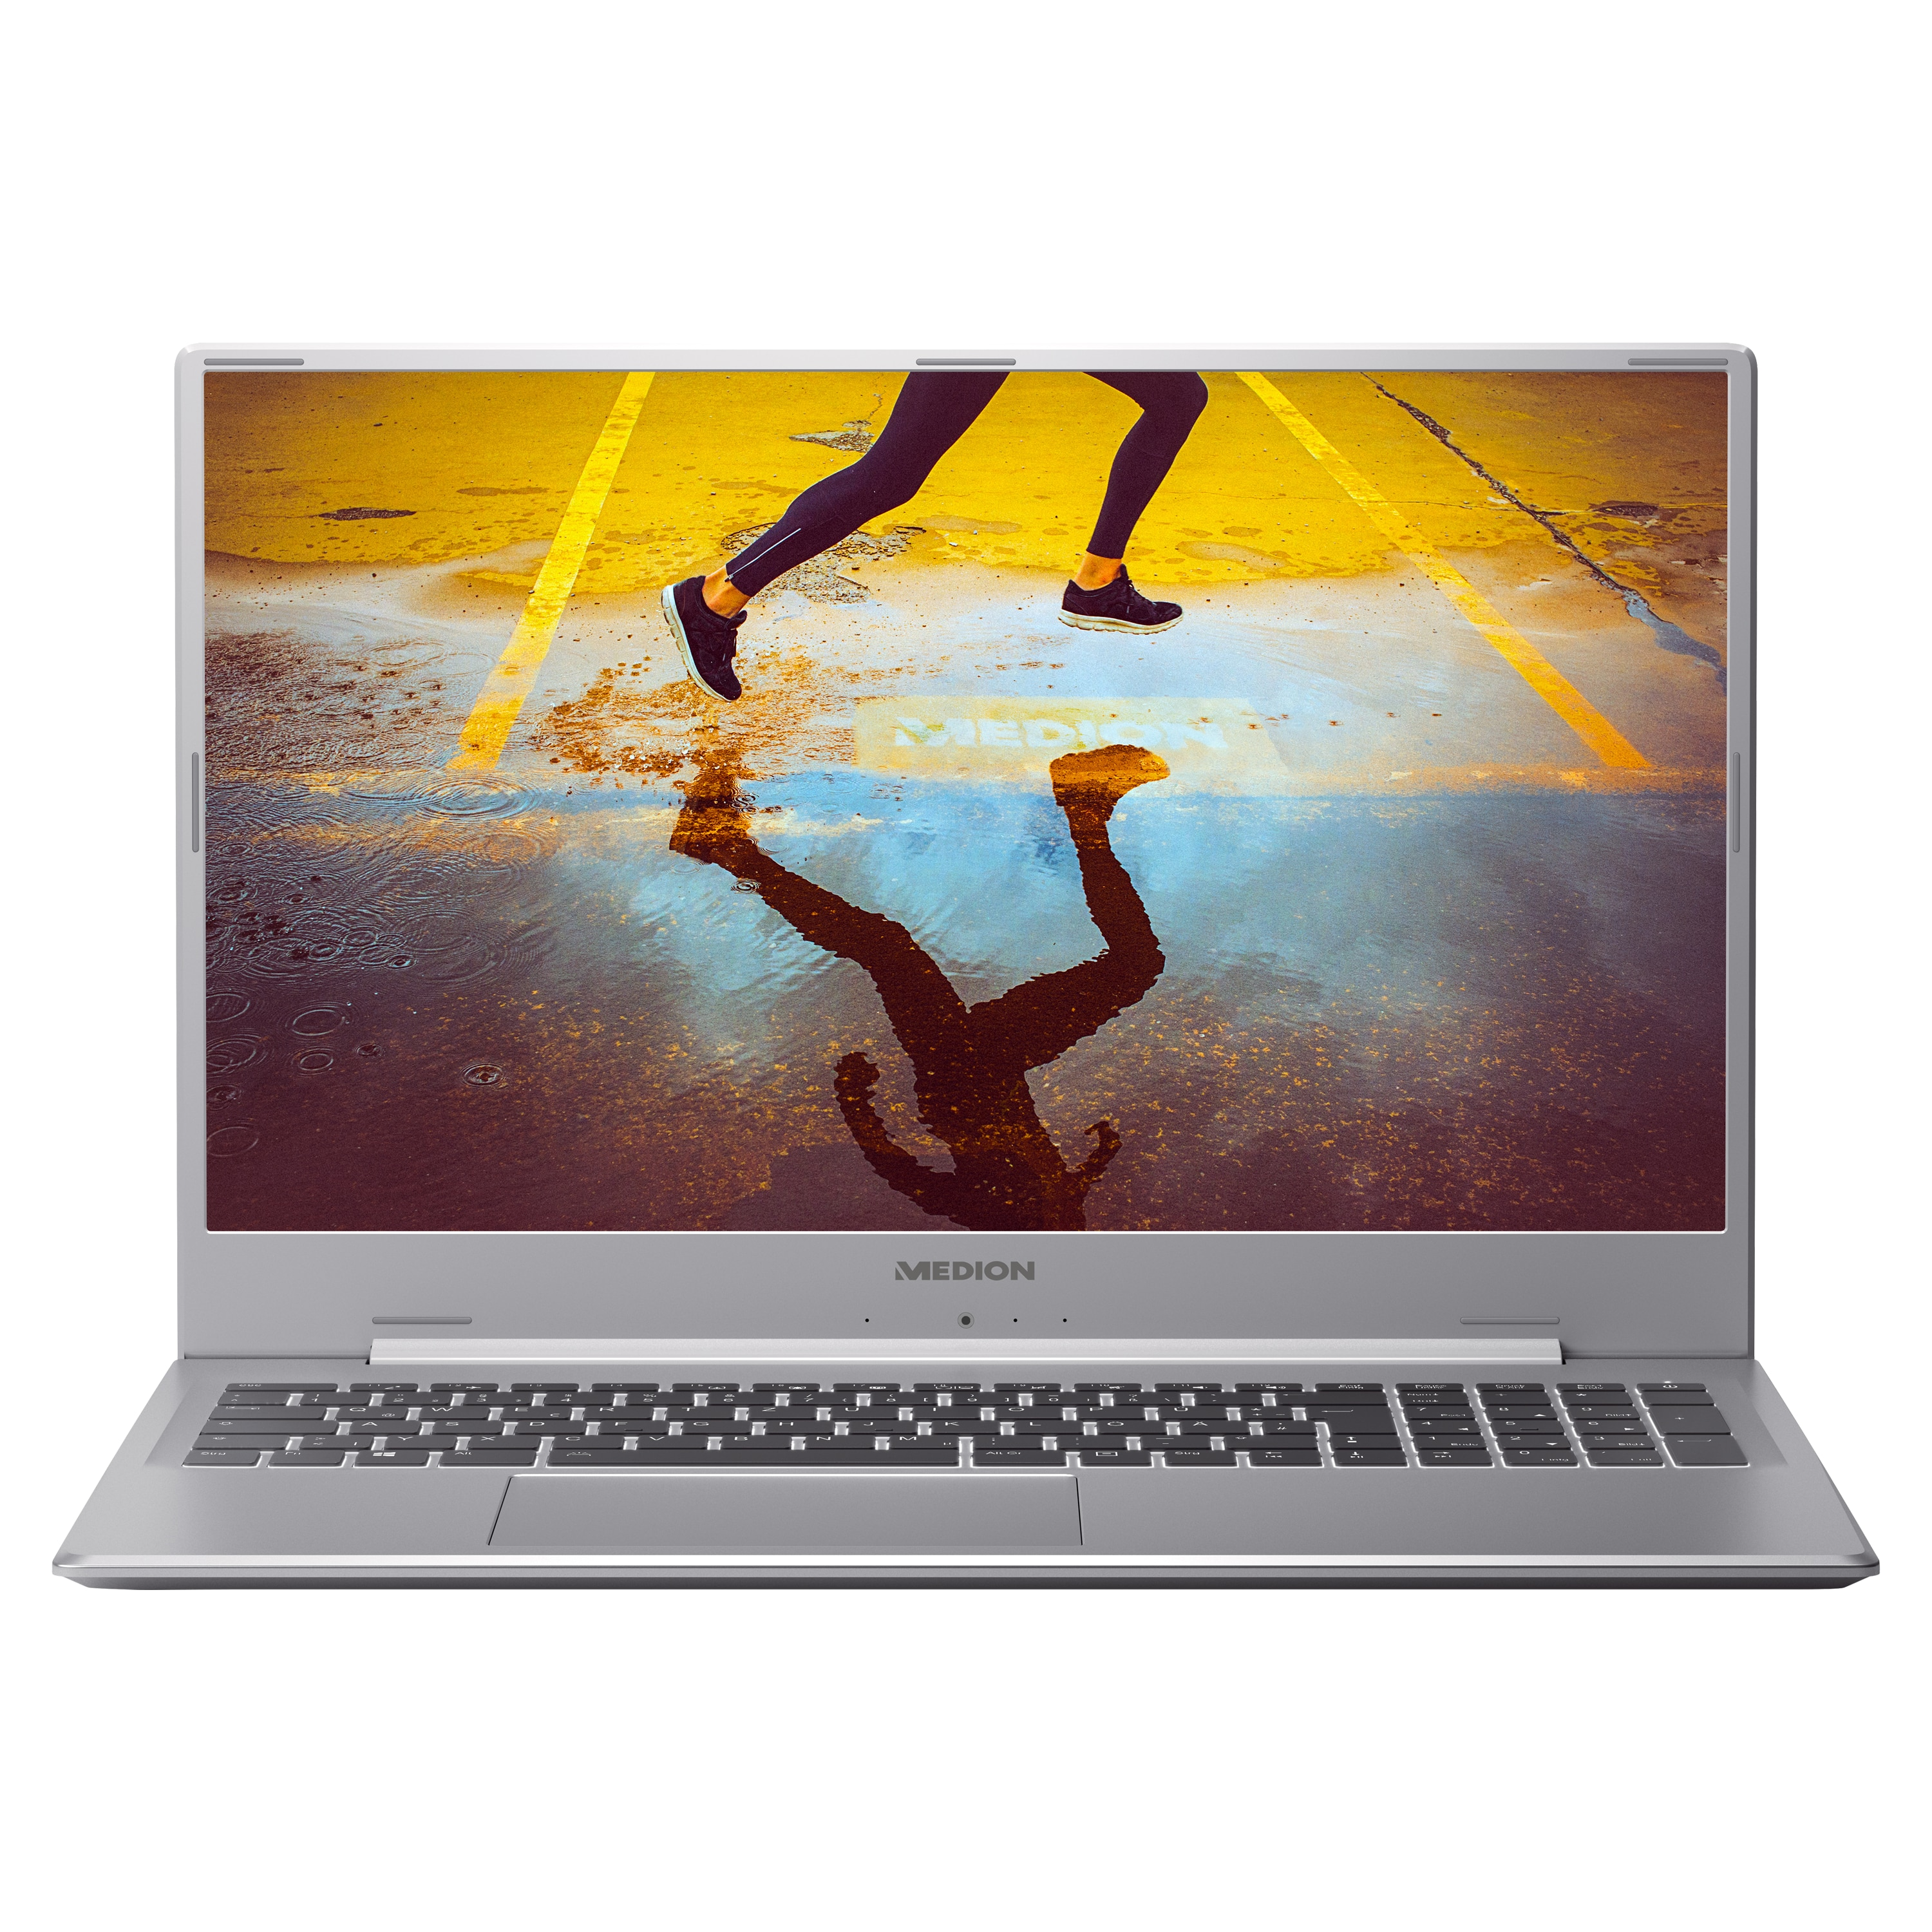 MEDION® AKOYA S17403 Performance laptop | Windows 10 Home | Ultra HD Graphics | 17,3 inch Full HD | 8 GB RAM | 512 GB SSD & SoftMaker Office Standard 2021